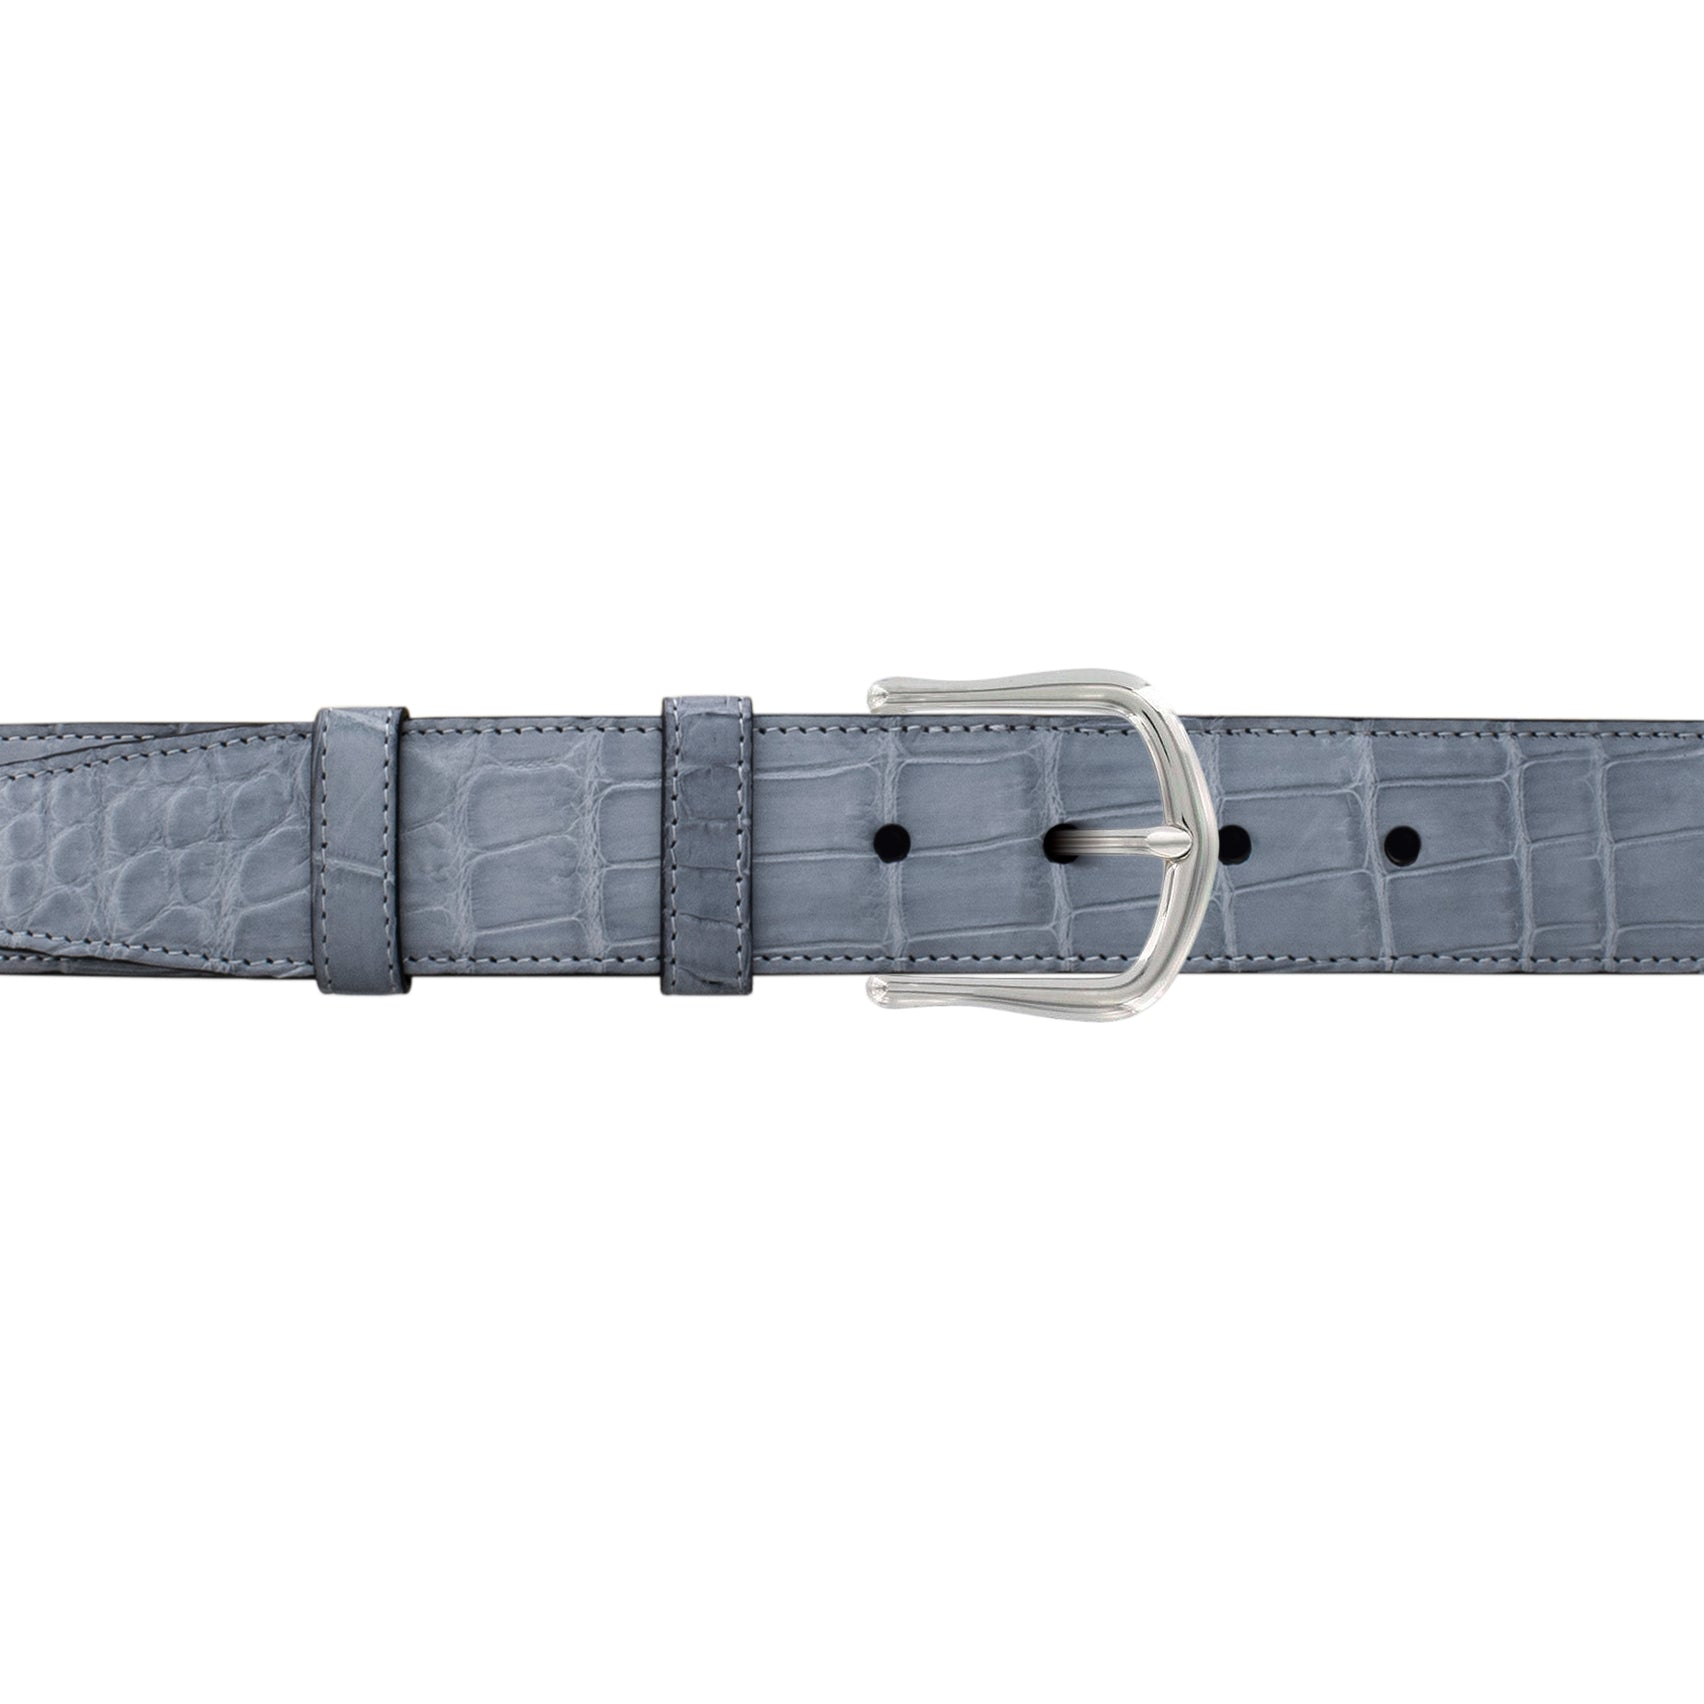 "1 1/2"" Slate Seasonal Belt with Derby Cocktail Buckle in Polished Nickel"